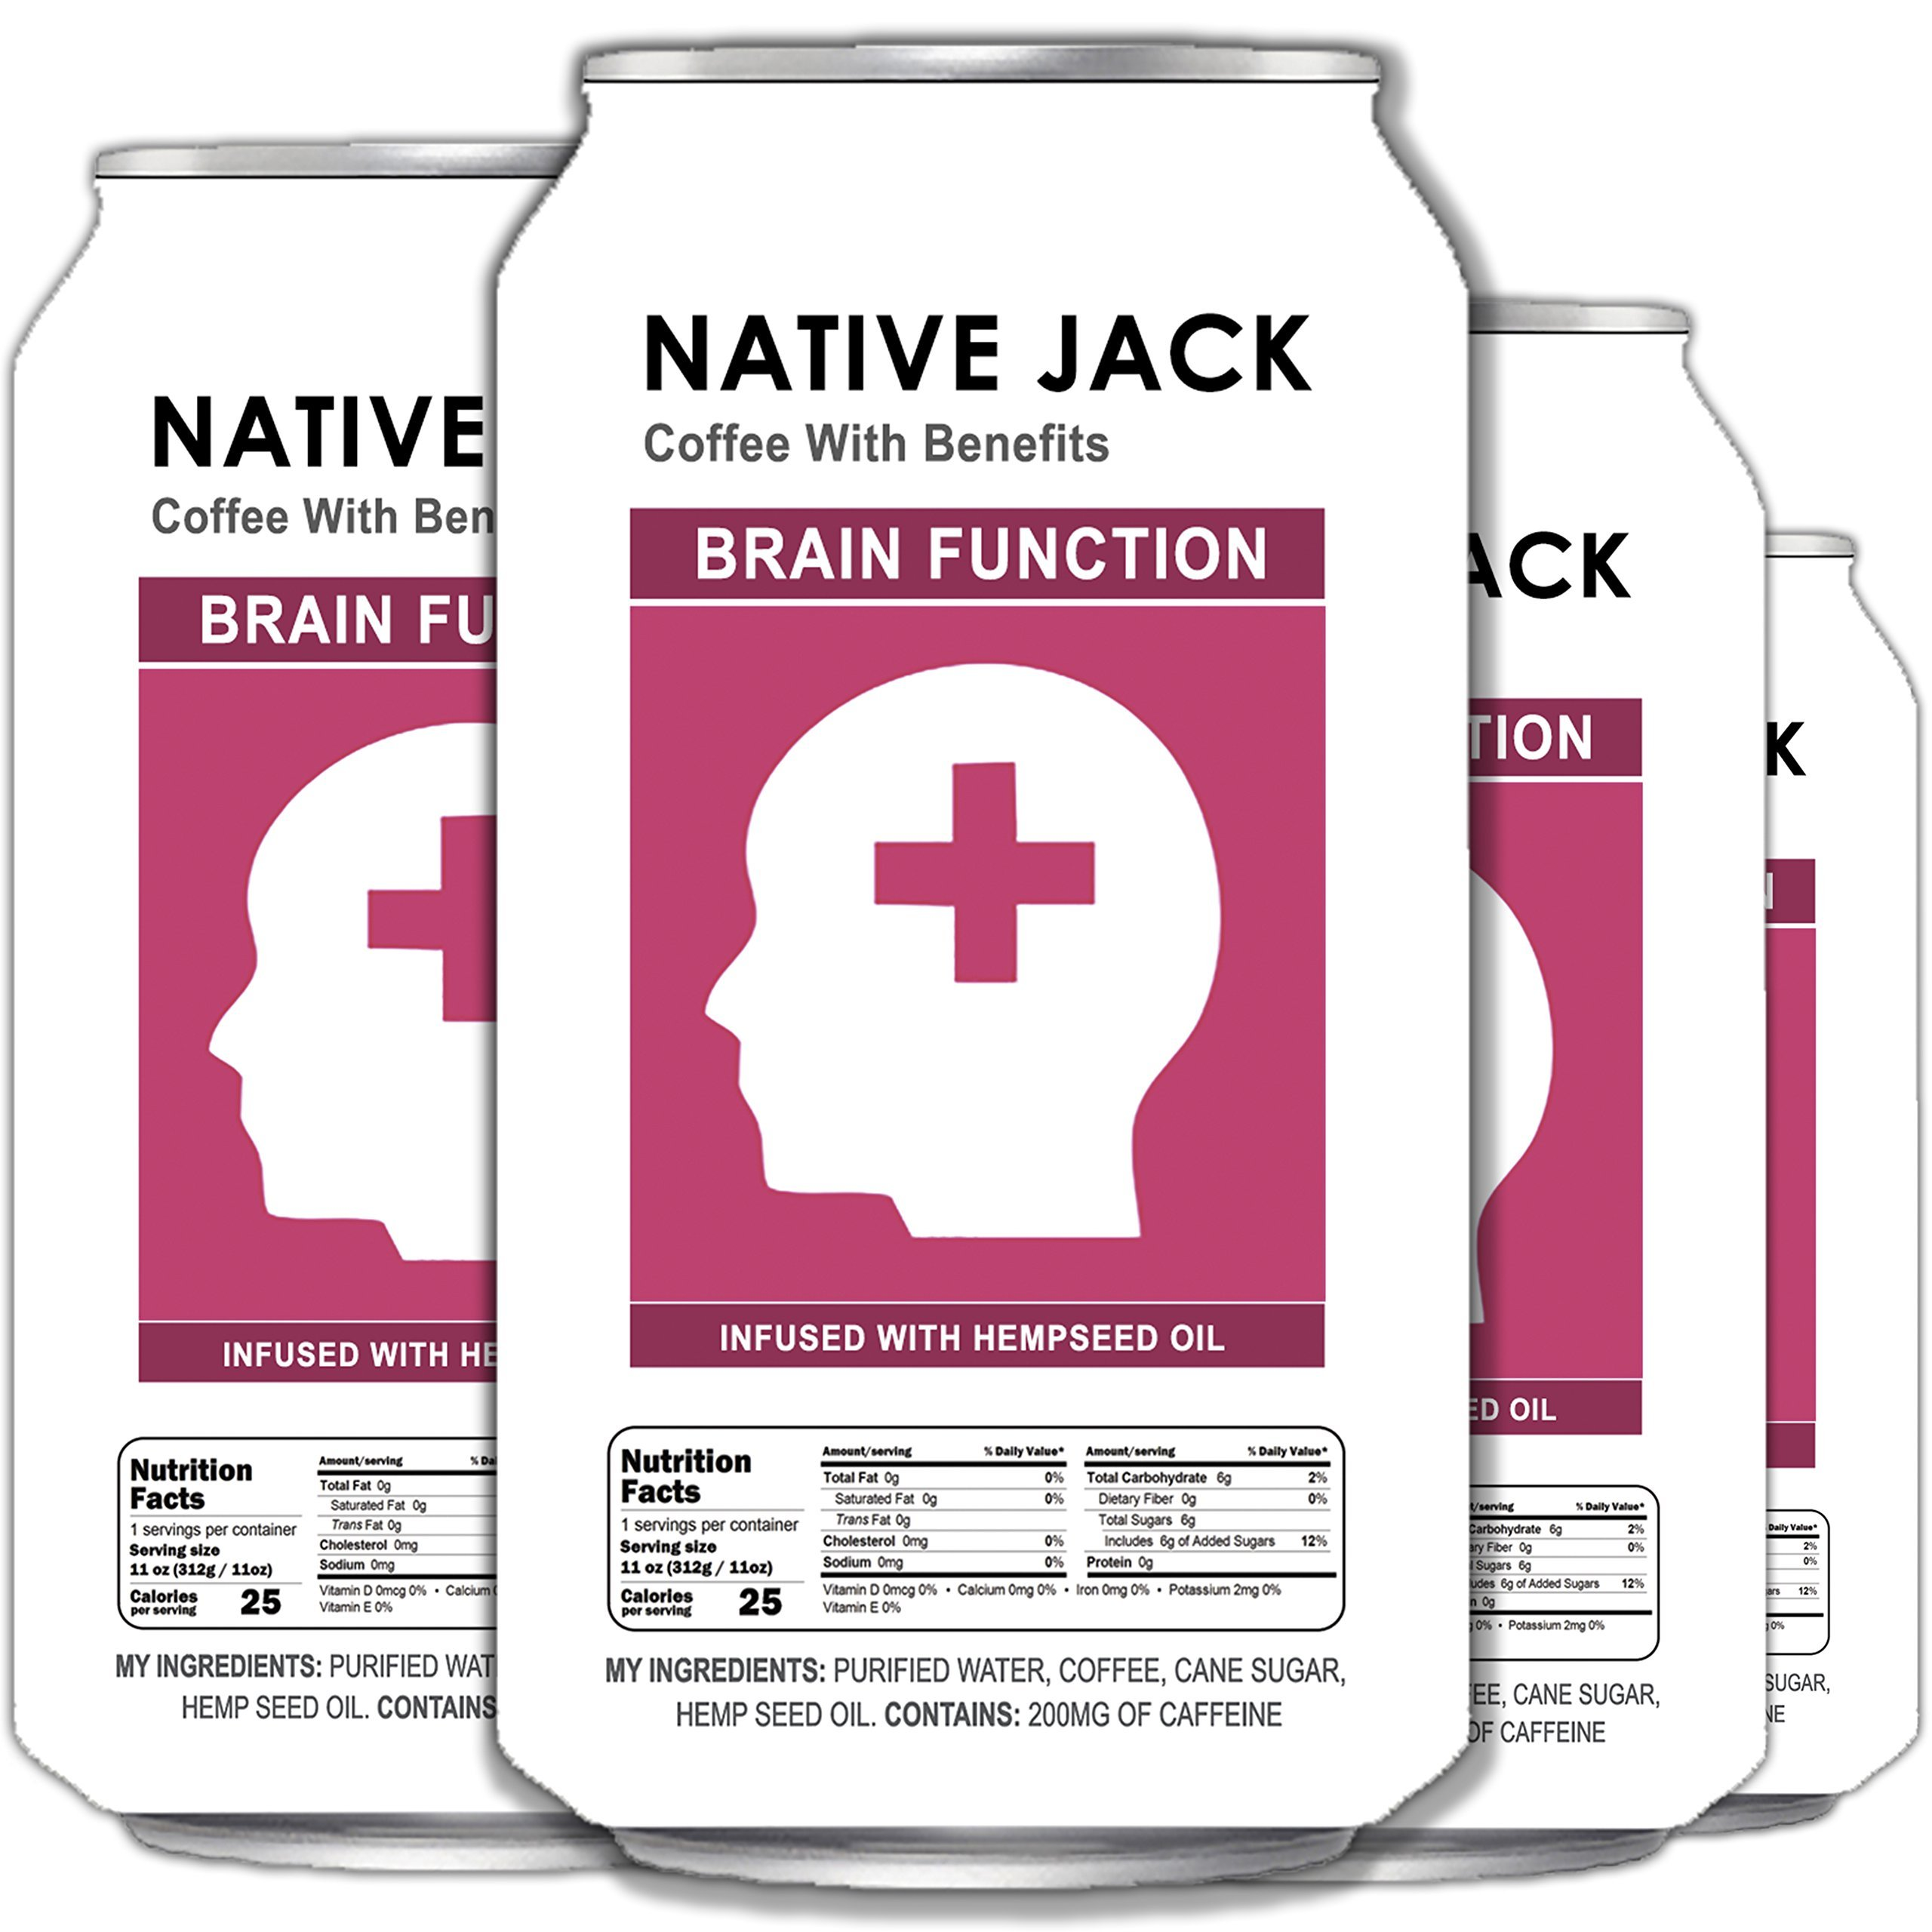 Native Jack Nitro Coffee, Infused With Brain Function Omega 3 Oils, 200mg of Caffeine (4 Count, 11 Fl Oz Each)